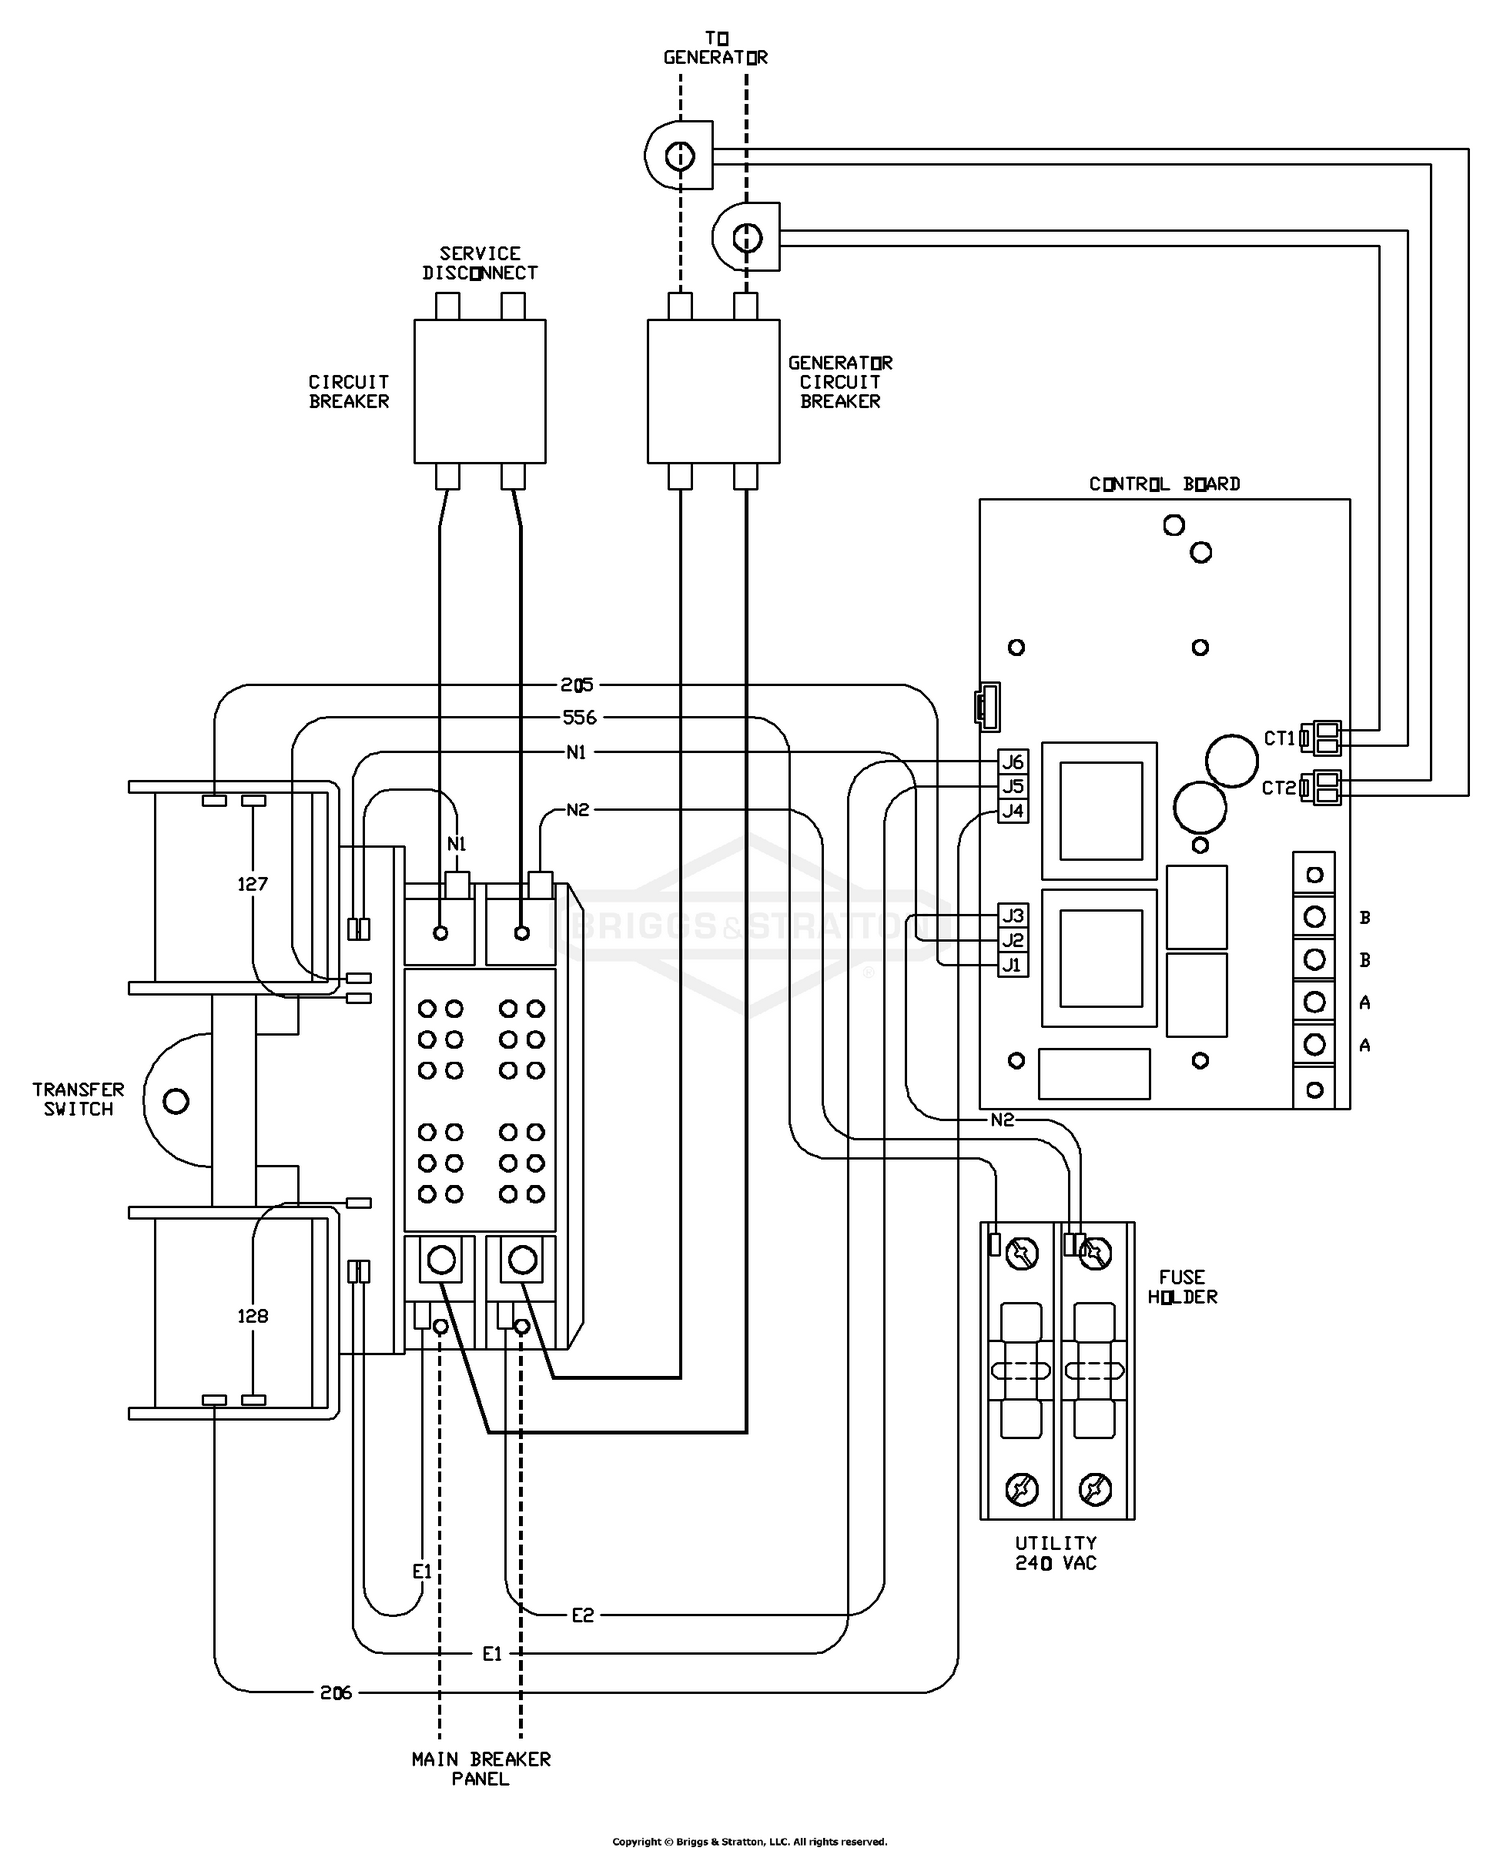 Home Generator Transfer Switch Wiring Diagram from cdn.datamanager.arinet.com